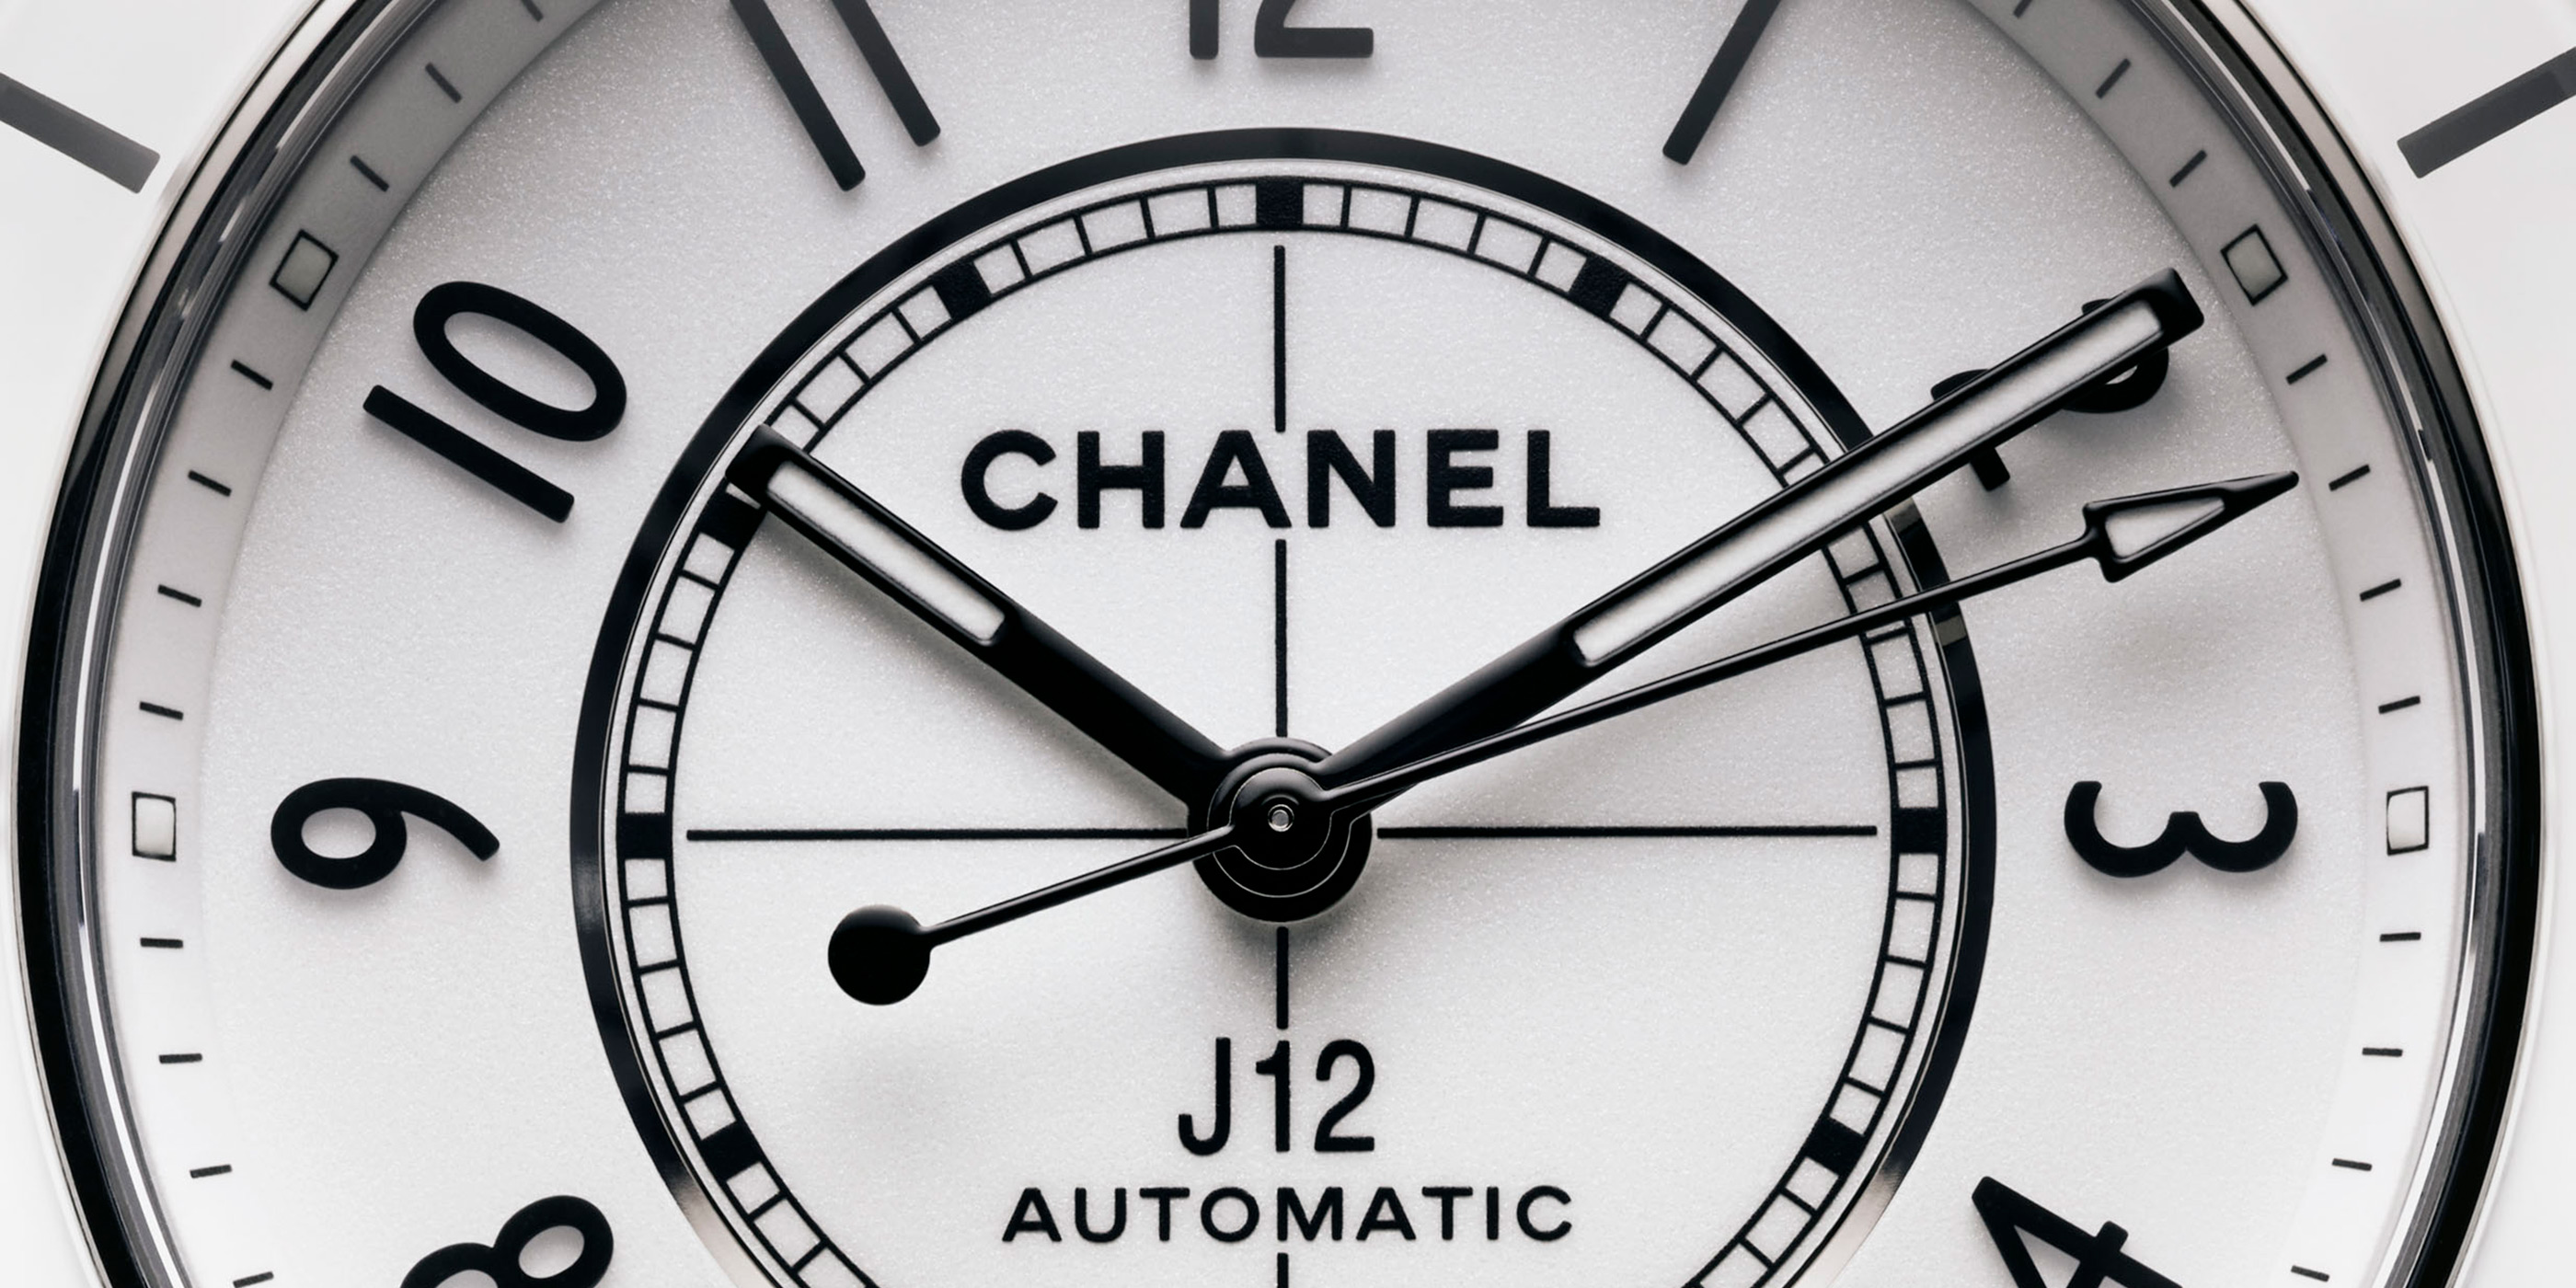 The Chanel J12 watch has become iconic